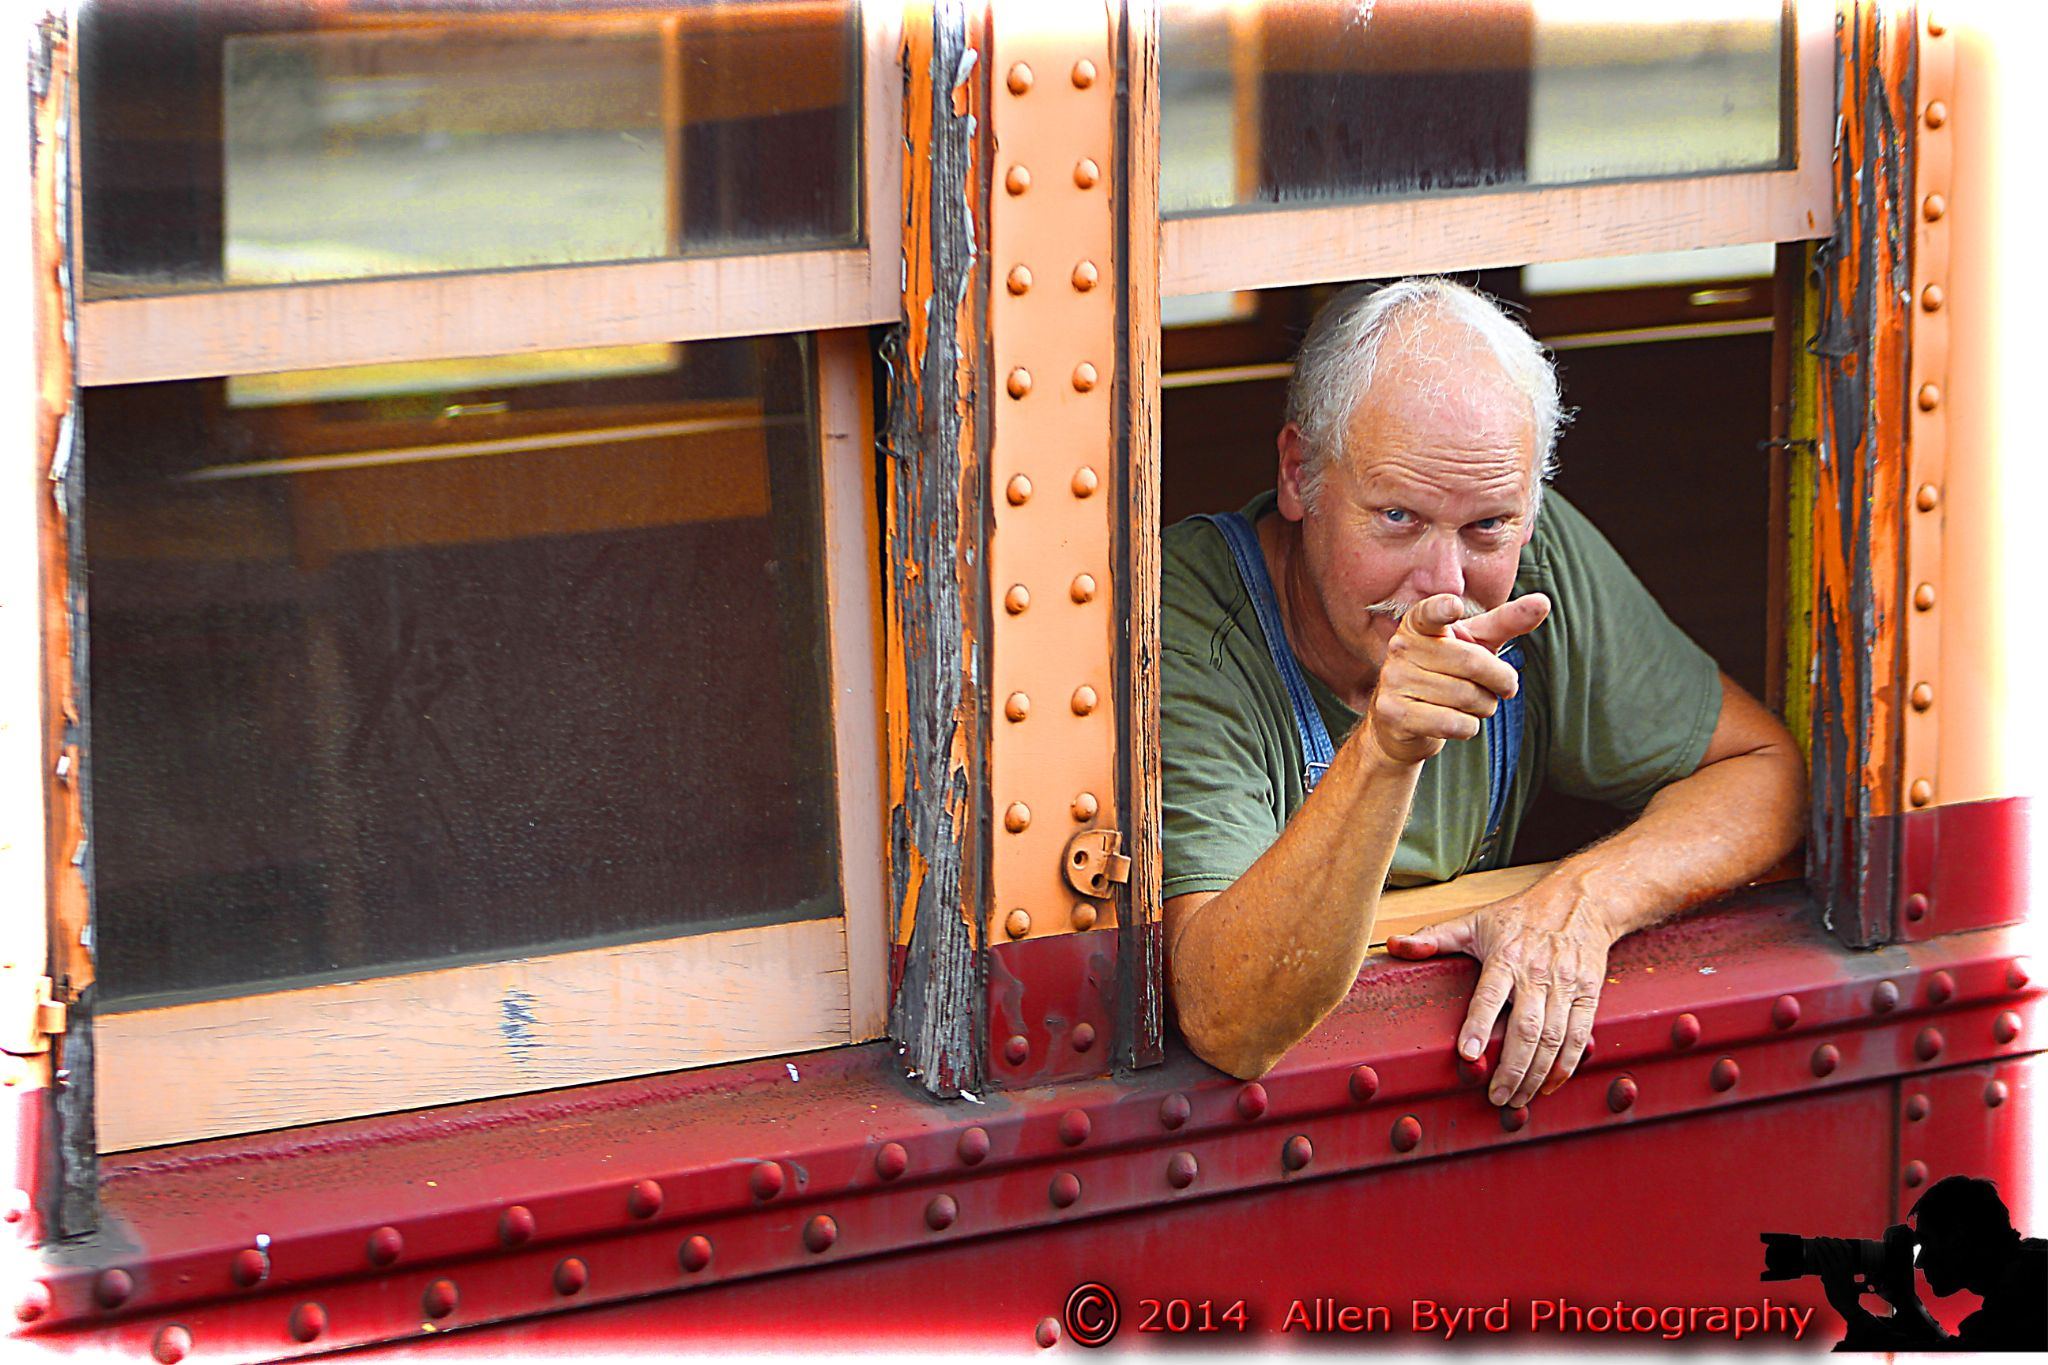 gsmr-conductor-1 by Allen Byrd Photography